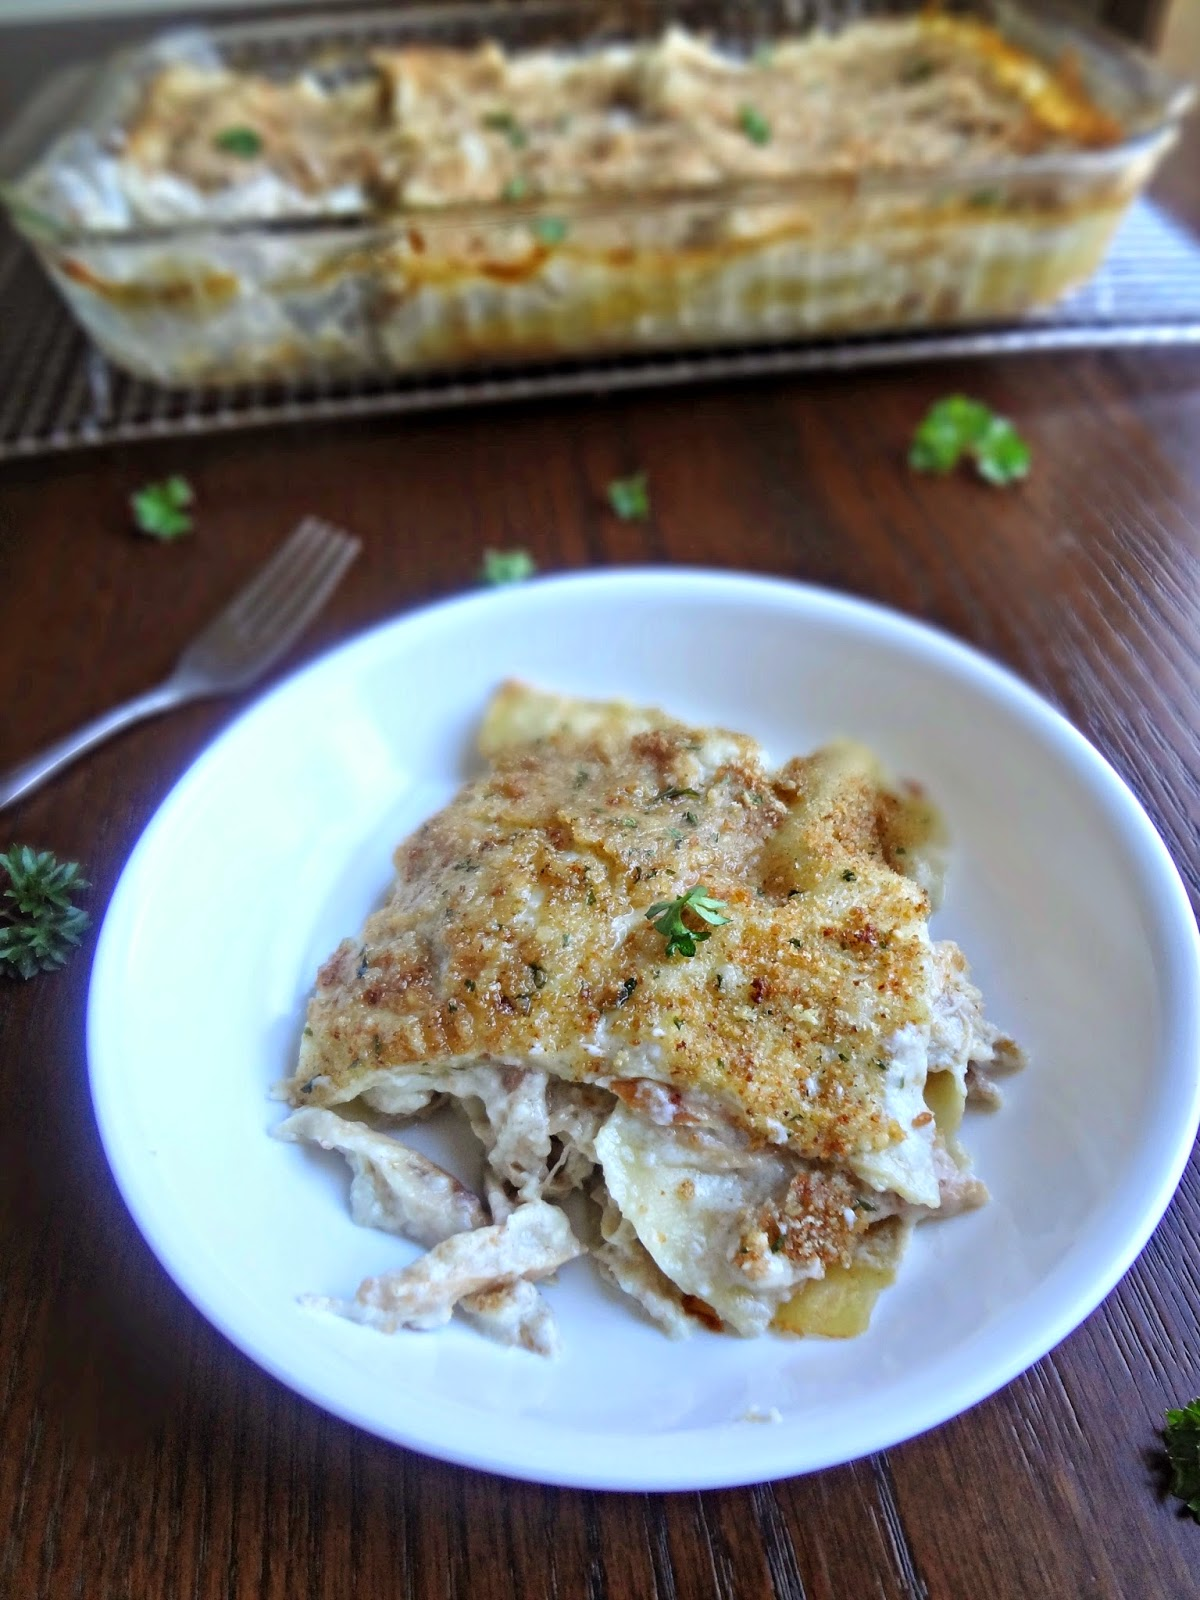 ... don't know what else to say. Garlicky sauce, cheese, noodles, chicken